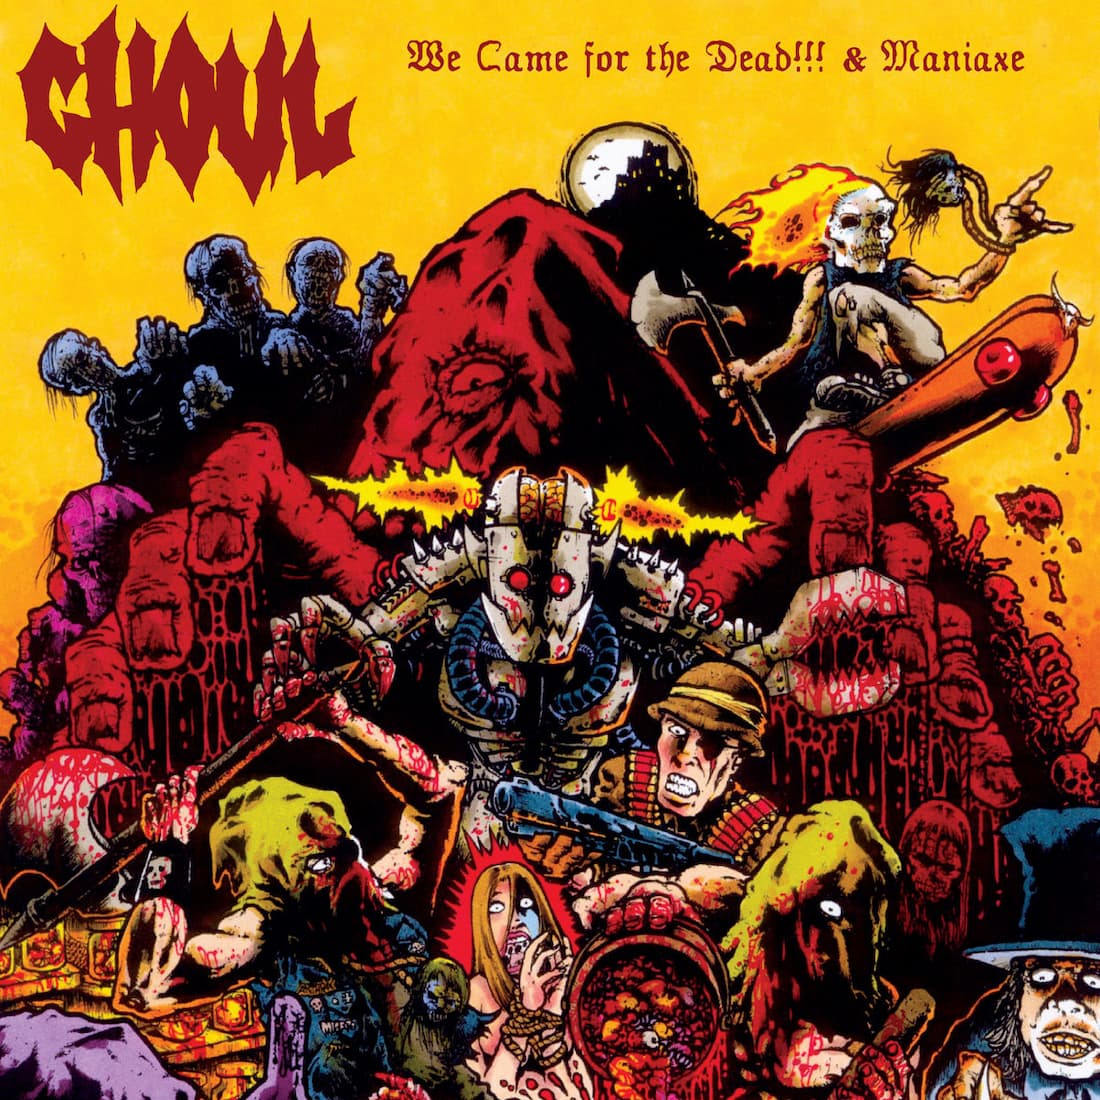 Ghoul - We Came for the Dead!!! & Maniaxe